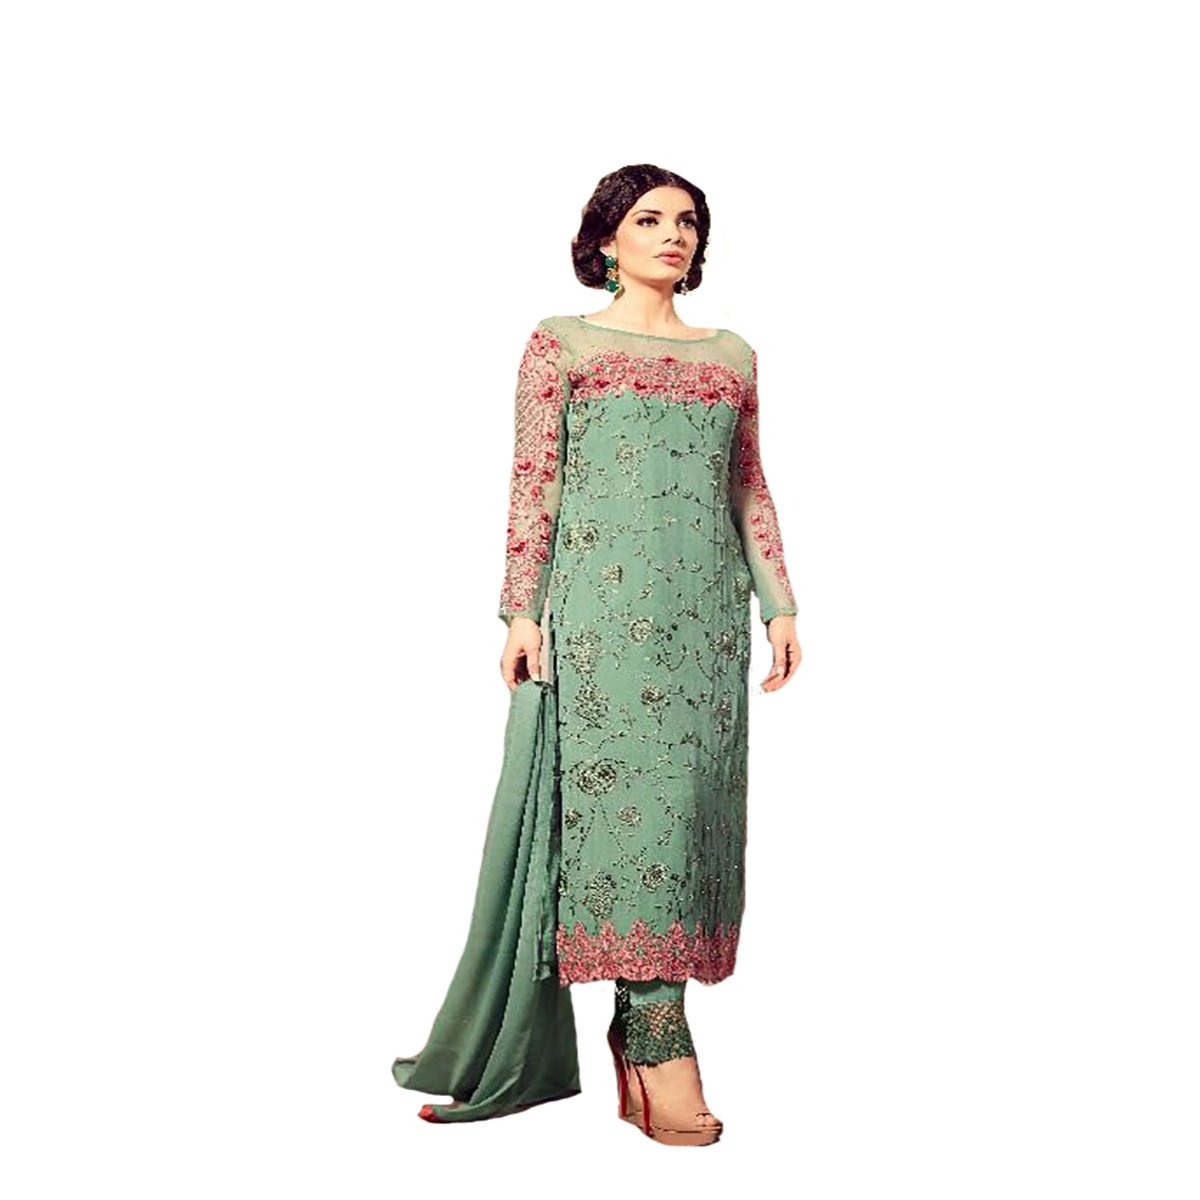 Latest Wedding Collection Women Dress Straight Salwar Kameez Suit Party Wear 375